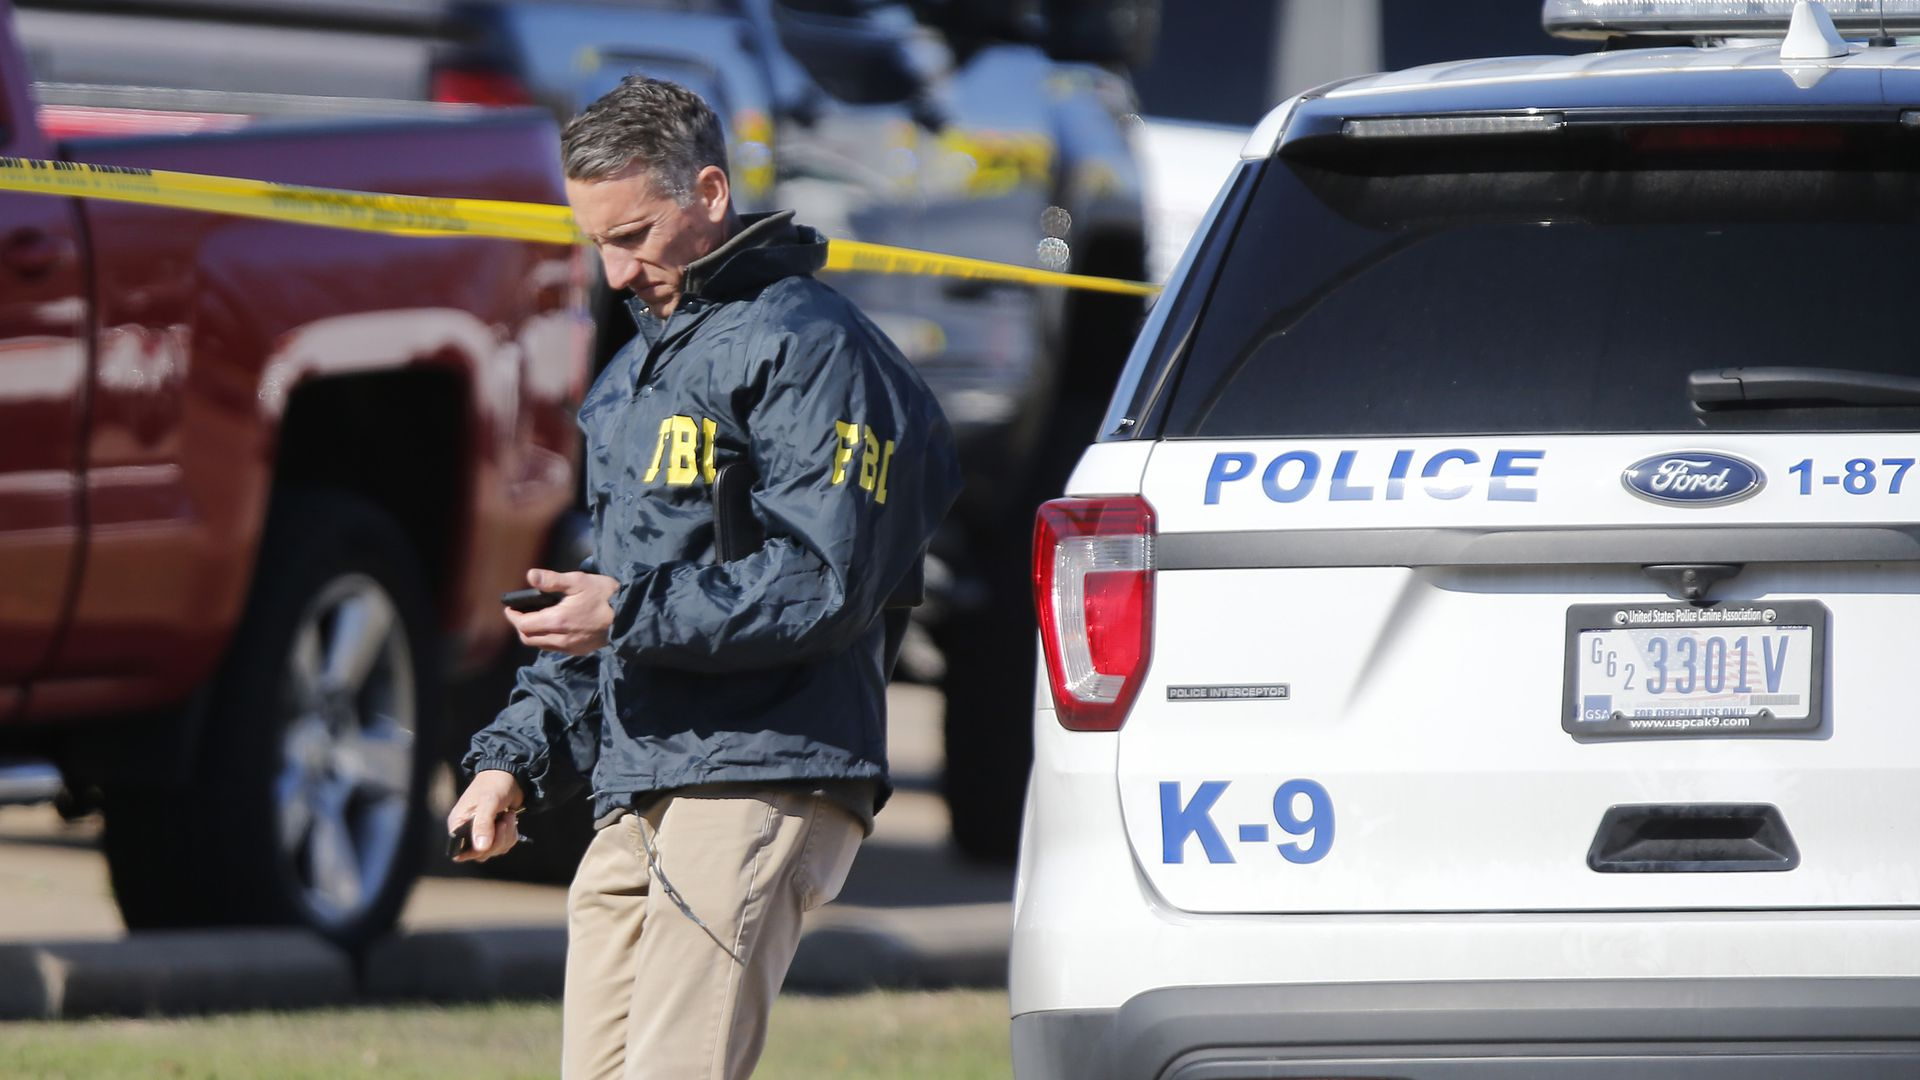 An FBI agent works the scene after a shooting took place during services at West Freeway Church of Christ on December 29, 2019 in White Settlement, Texas.